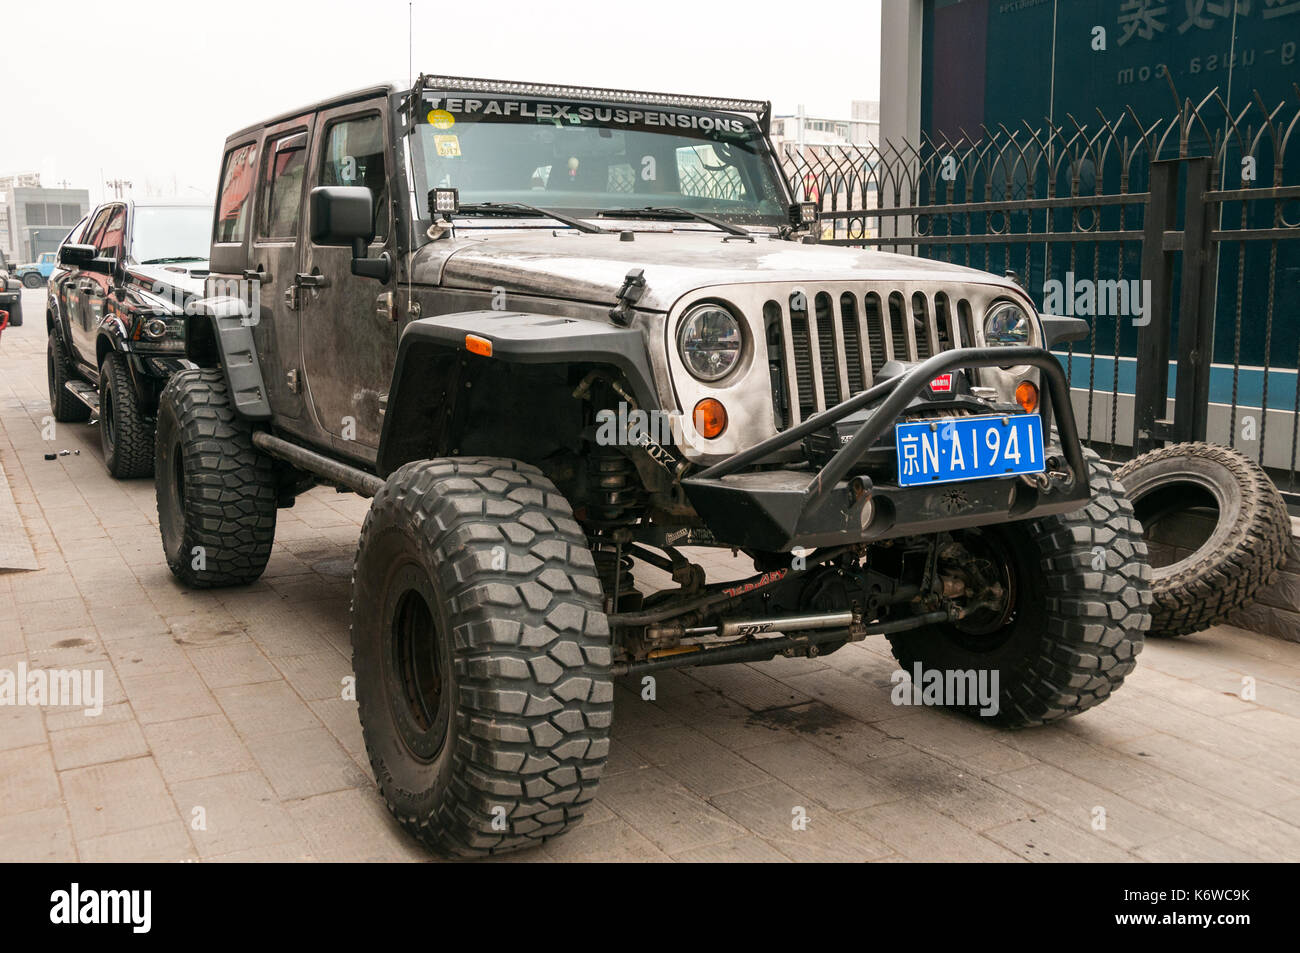 jeep wrangler stock photos jeep wrangler stock images alamy. Black Bedroom Furniture Sets. Home Design Ideas